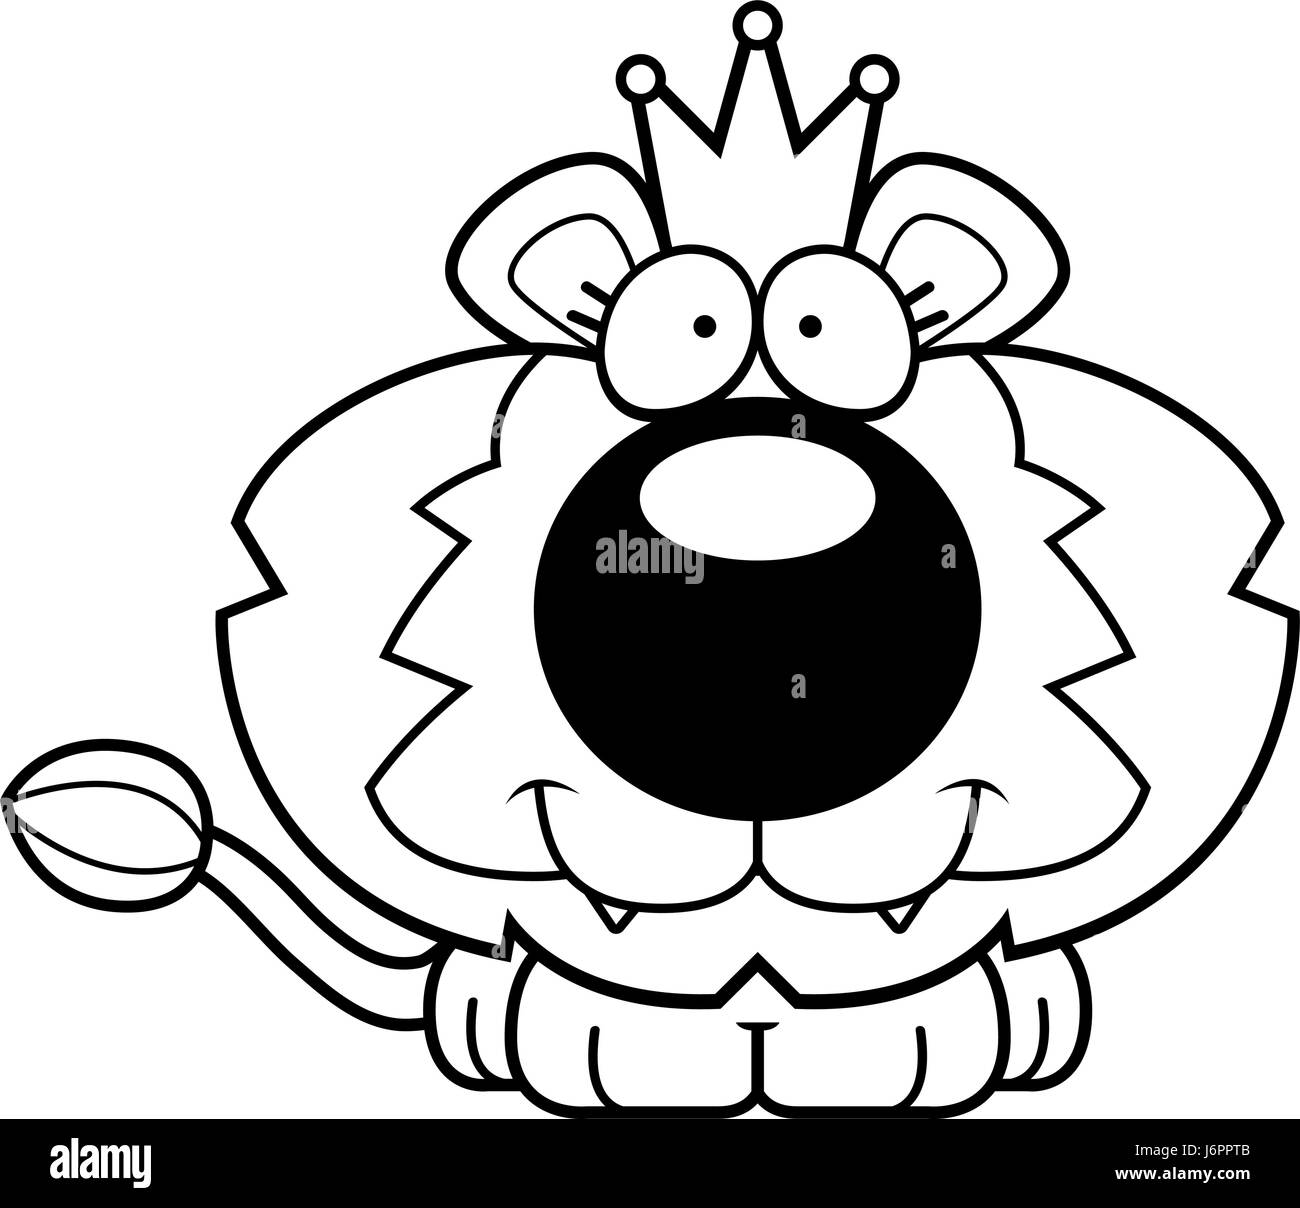 a cartoon illustration of a lion king with a crown stock vector